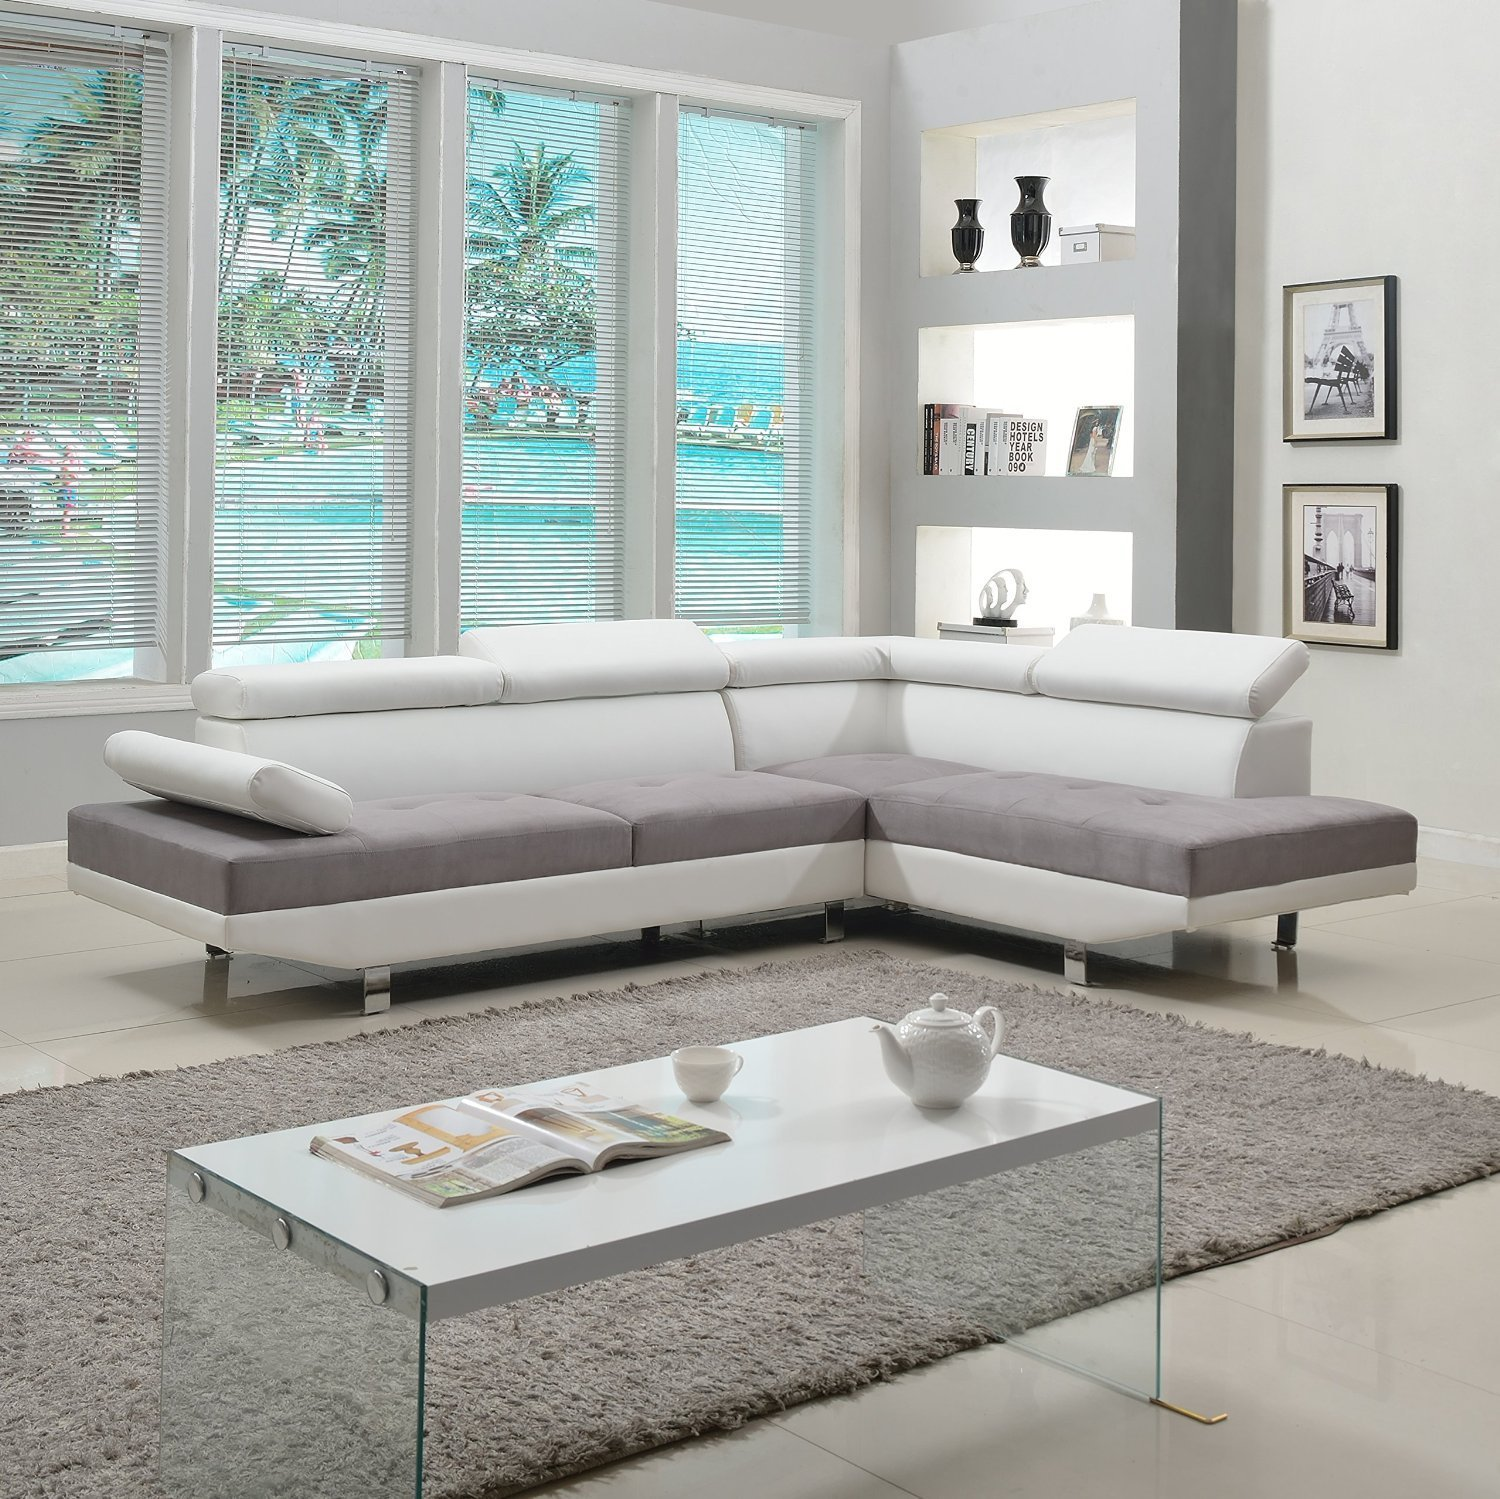 Modern Living Room Furniture Review – Find the Best e